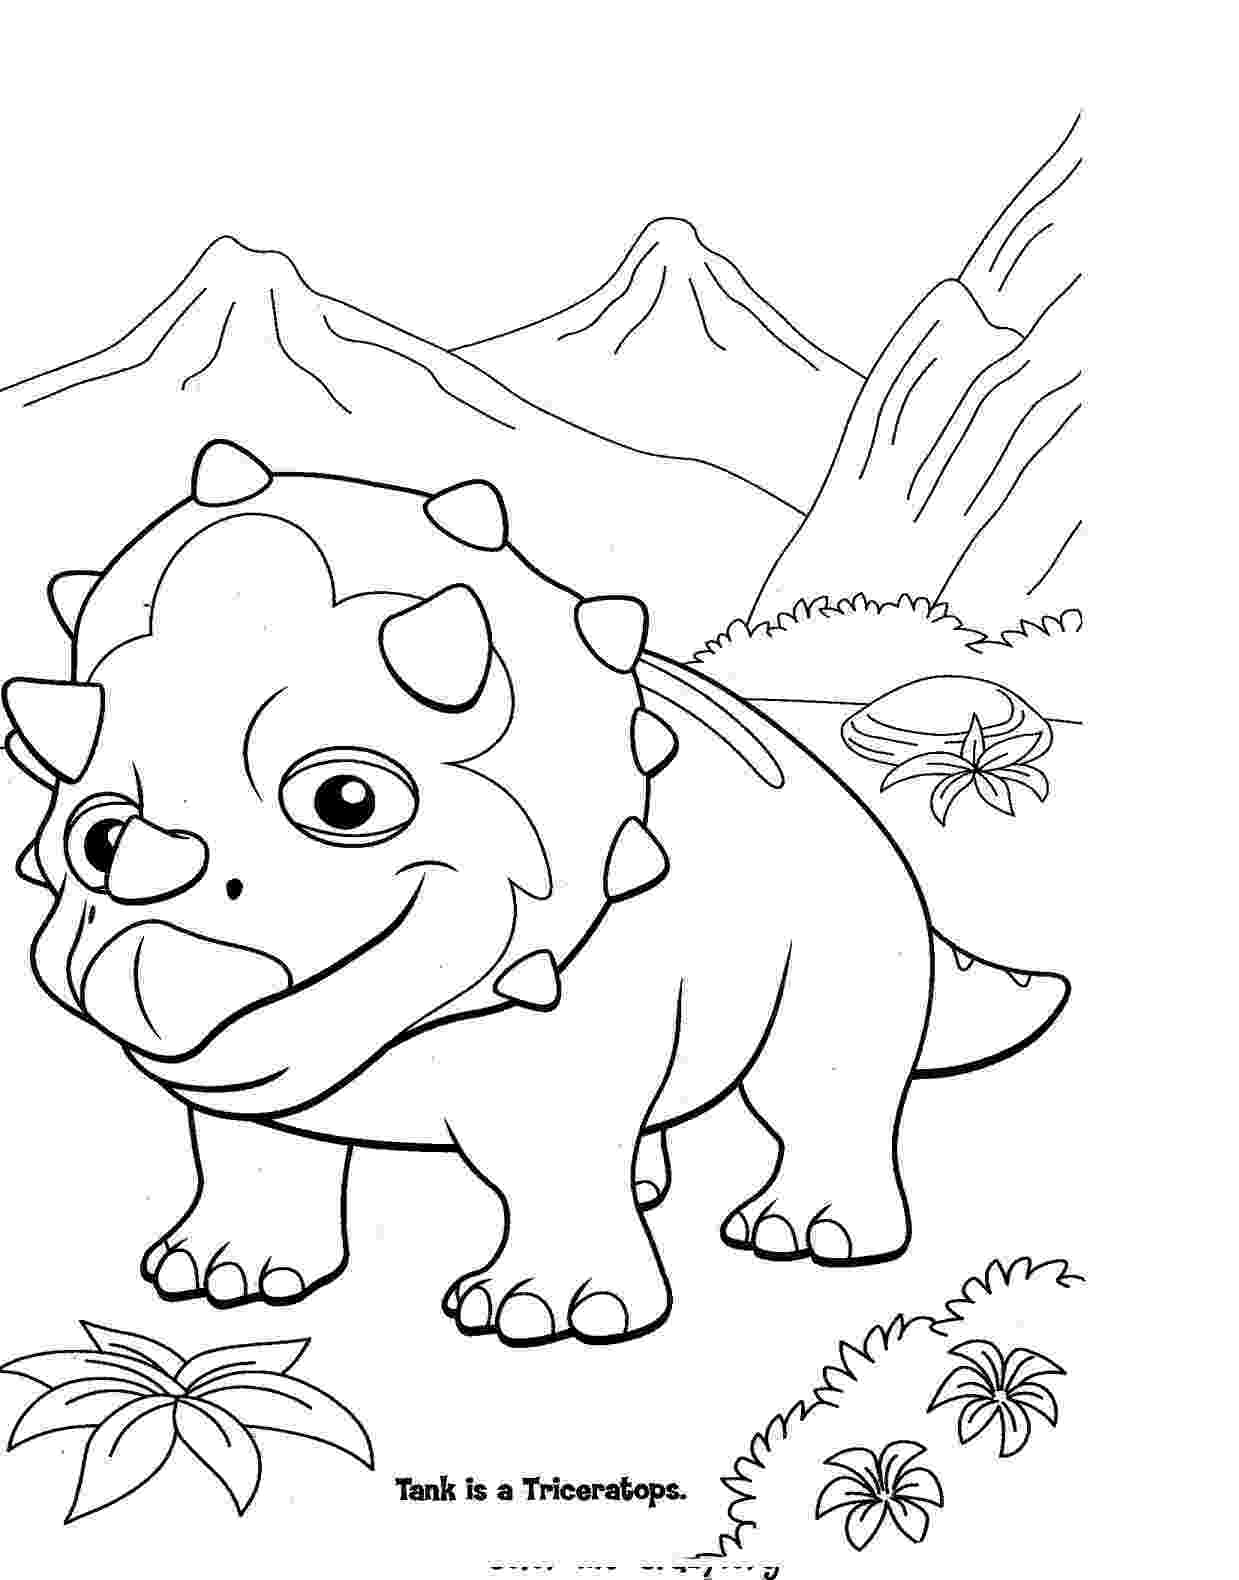 dinosaurs pictures coloring pages dinosaur free printable coloring pages dinosaurs pictures